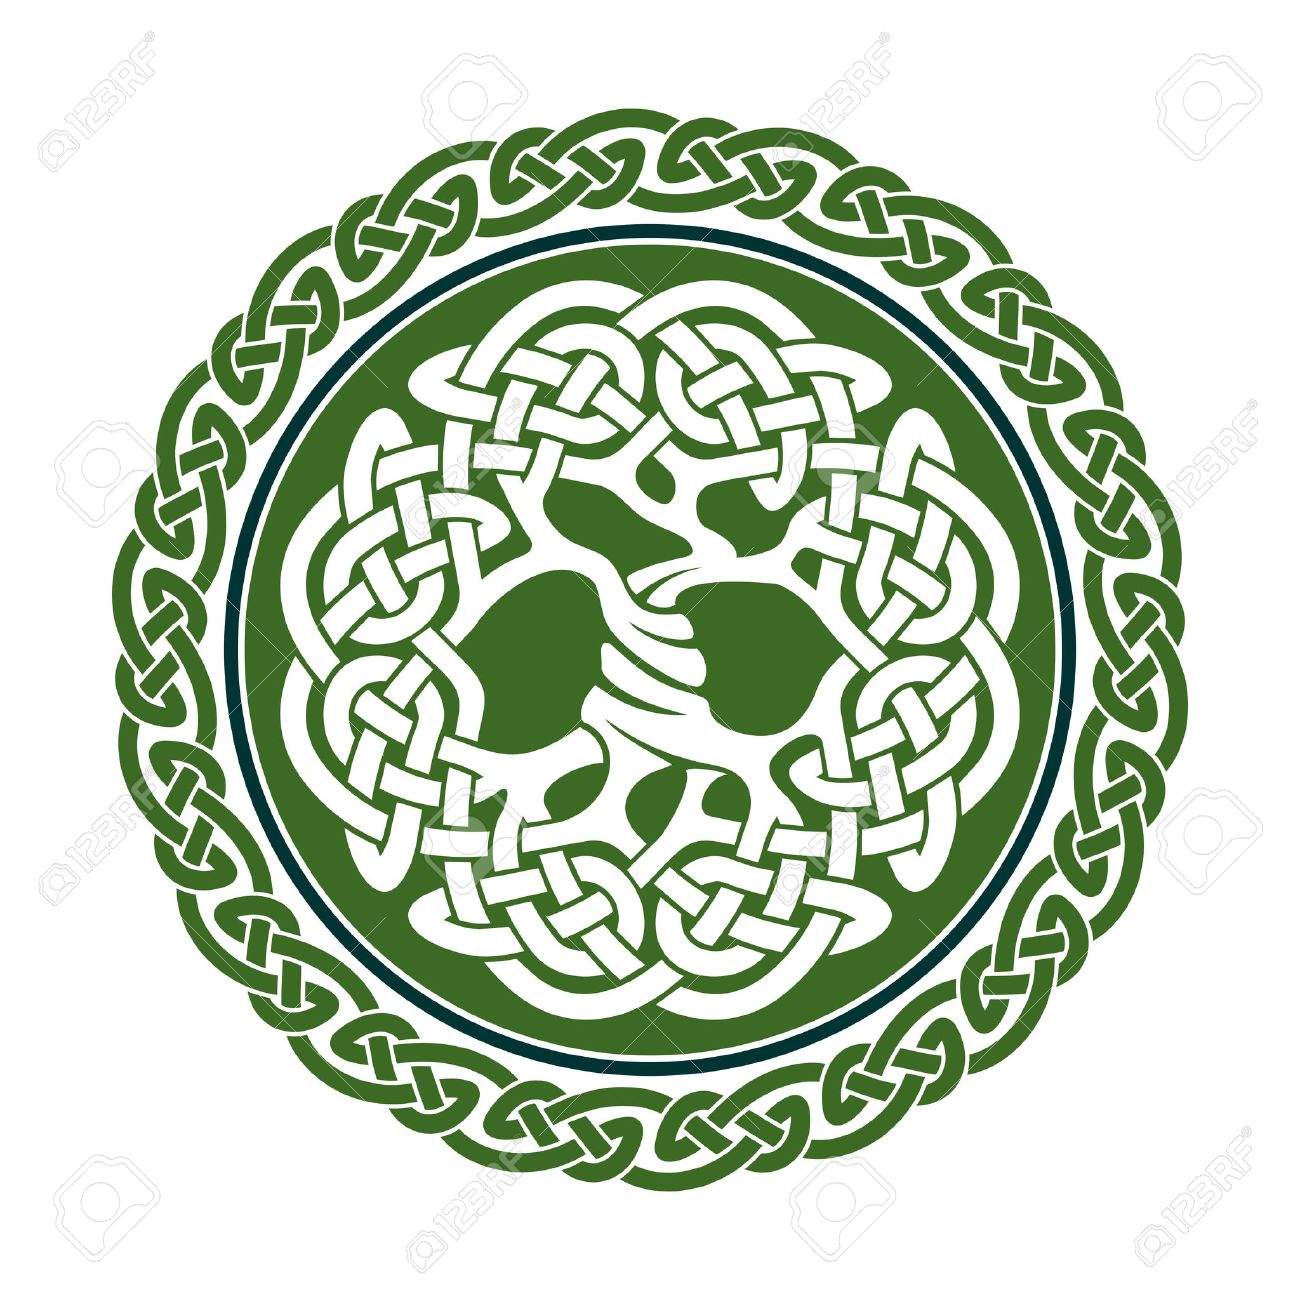 1300x1300 Illustration Of Celtic Tree Of Life, Vector Illustration Royalty